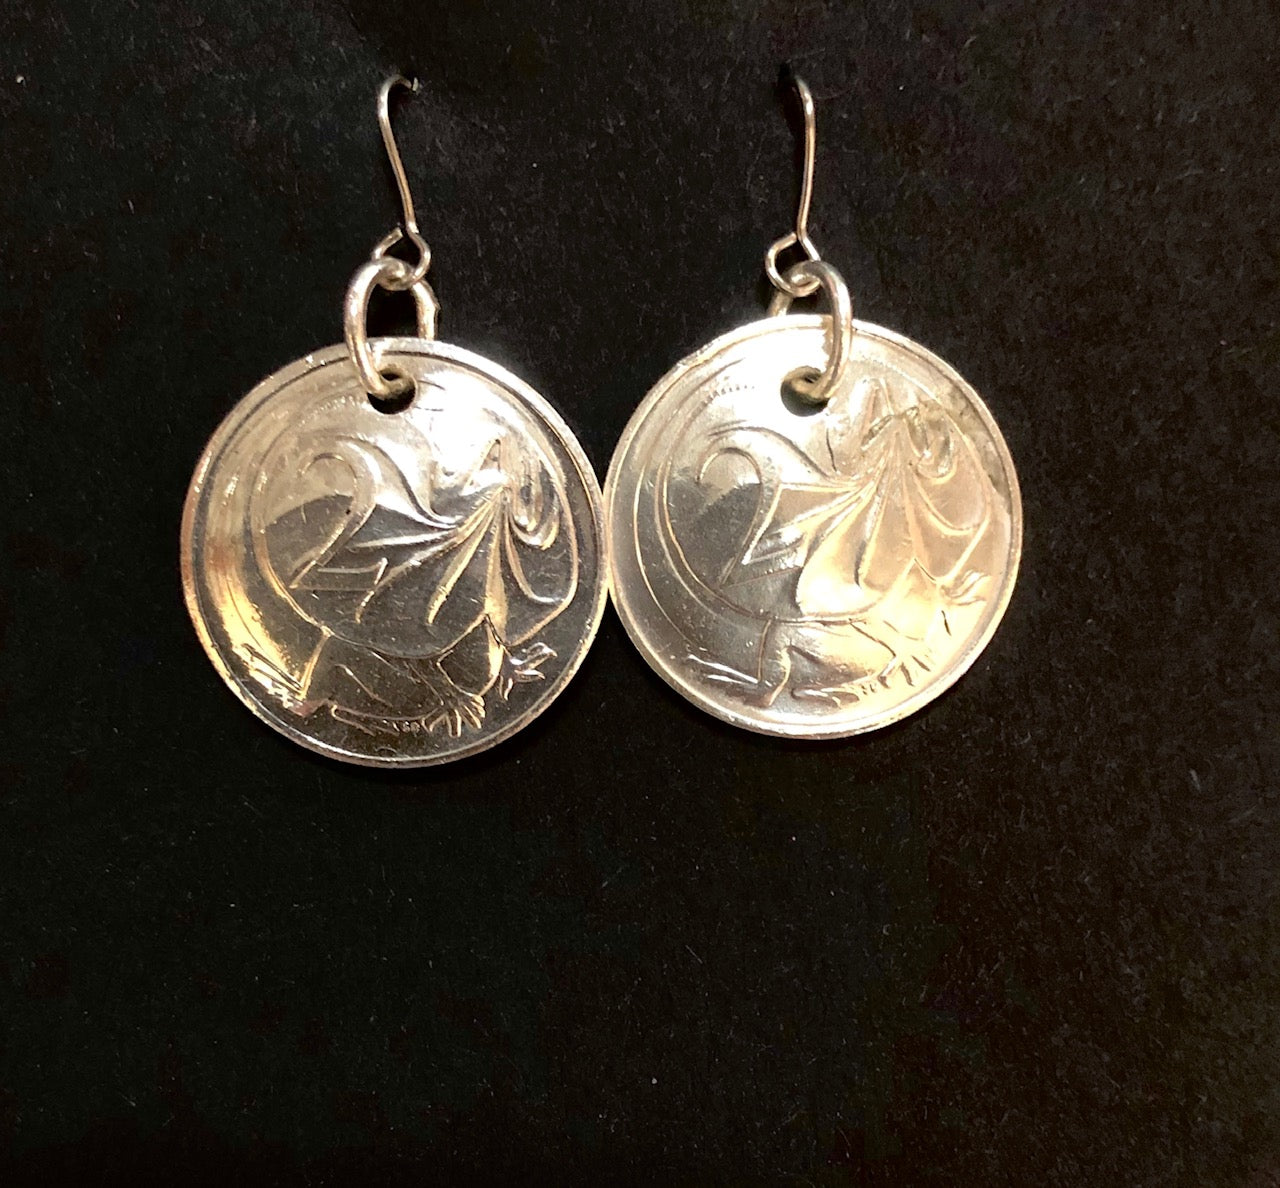 2c silver earrings